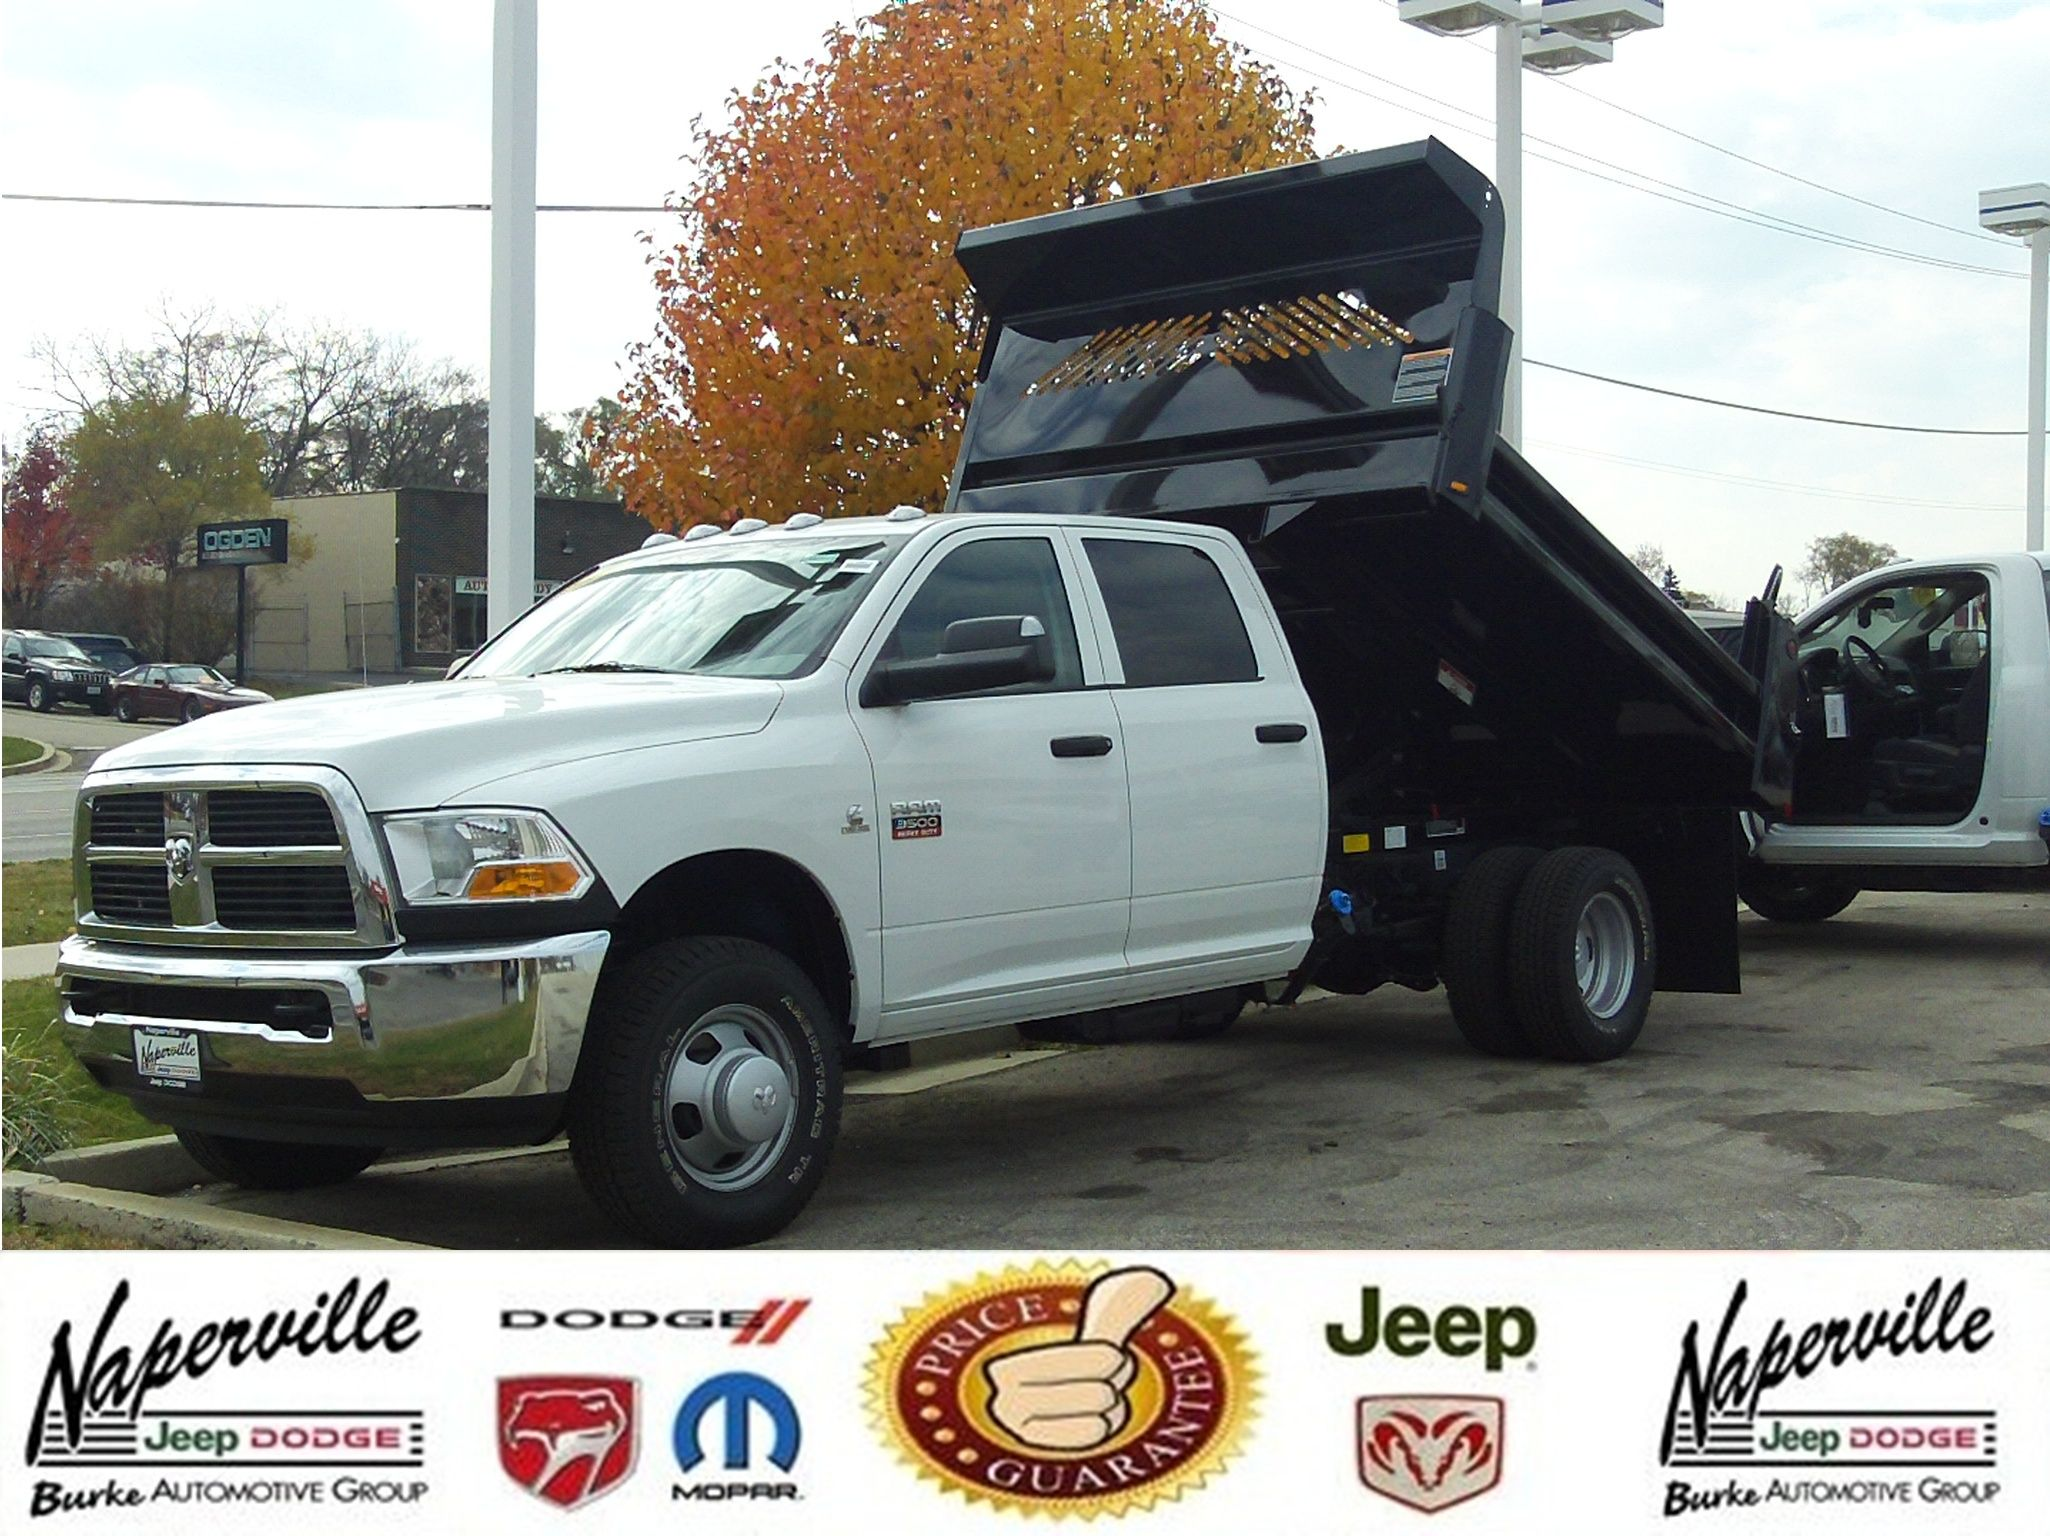 For Sale! 2012 Dodge Ram 3500 Crew Cab 4X4 Chassis Dump Body- 6.7L Cummins Turbo Diesel!!! GVW Rating - 13,000 Pounds!! Heavy Duty Snow Plow Prep Group, Power Take Off Prep, Trailer Brake Controller, READY TO BE UP-FITTED WITH WHAT EVER YOU WANT!!! Contact Chris Olson or David Foland at 888-584-8379